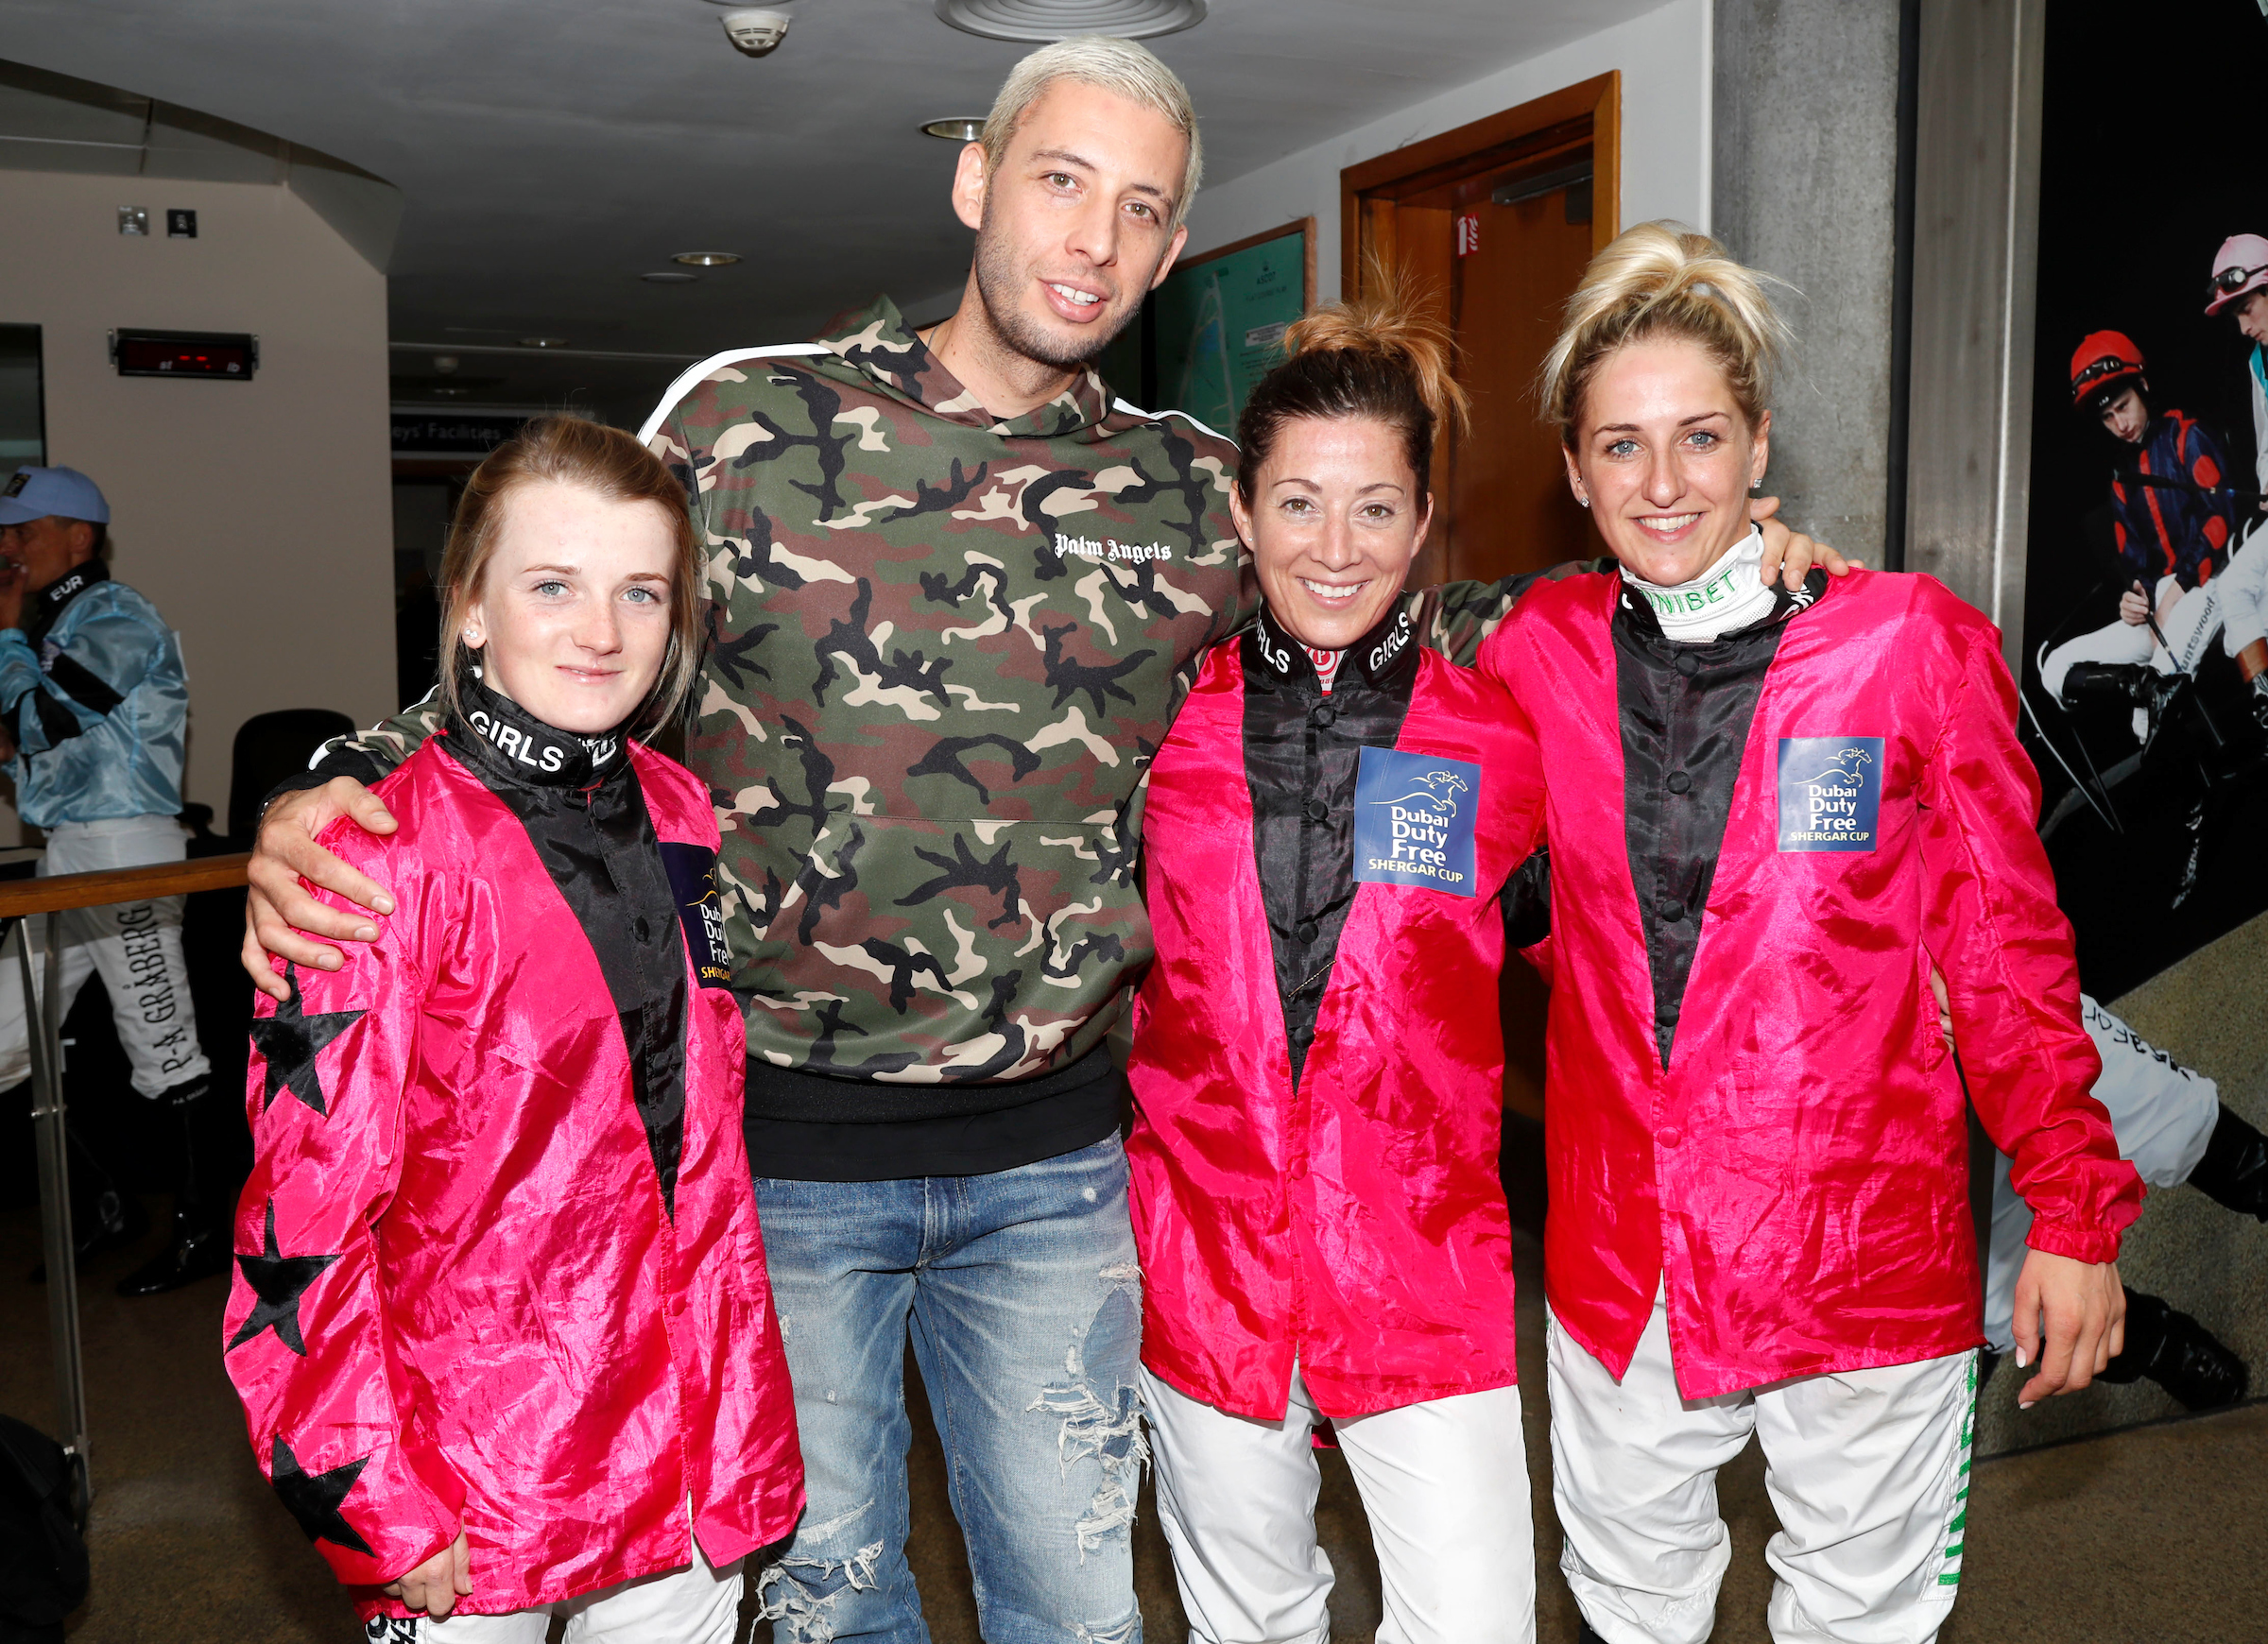 Winning Girls Team of Hollie Doyle, Hayley Turner and Josephine Gordon met Example (FocusOnRacing